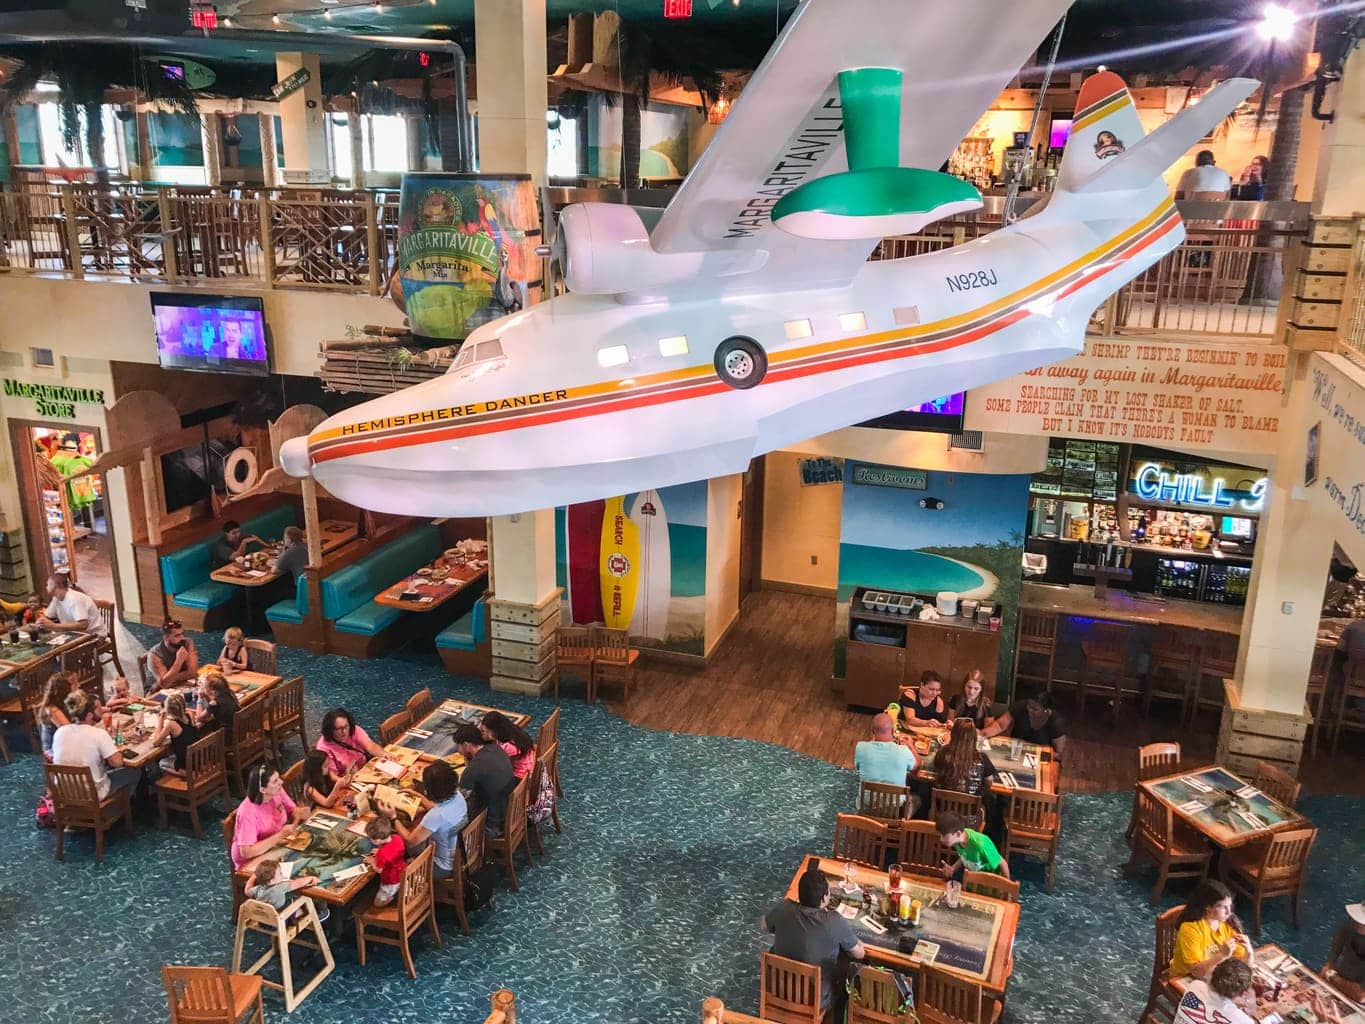 Lobby of Margaritaville Restaurant in Pigeon Forge